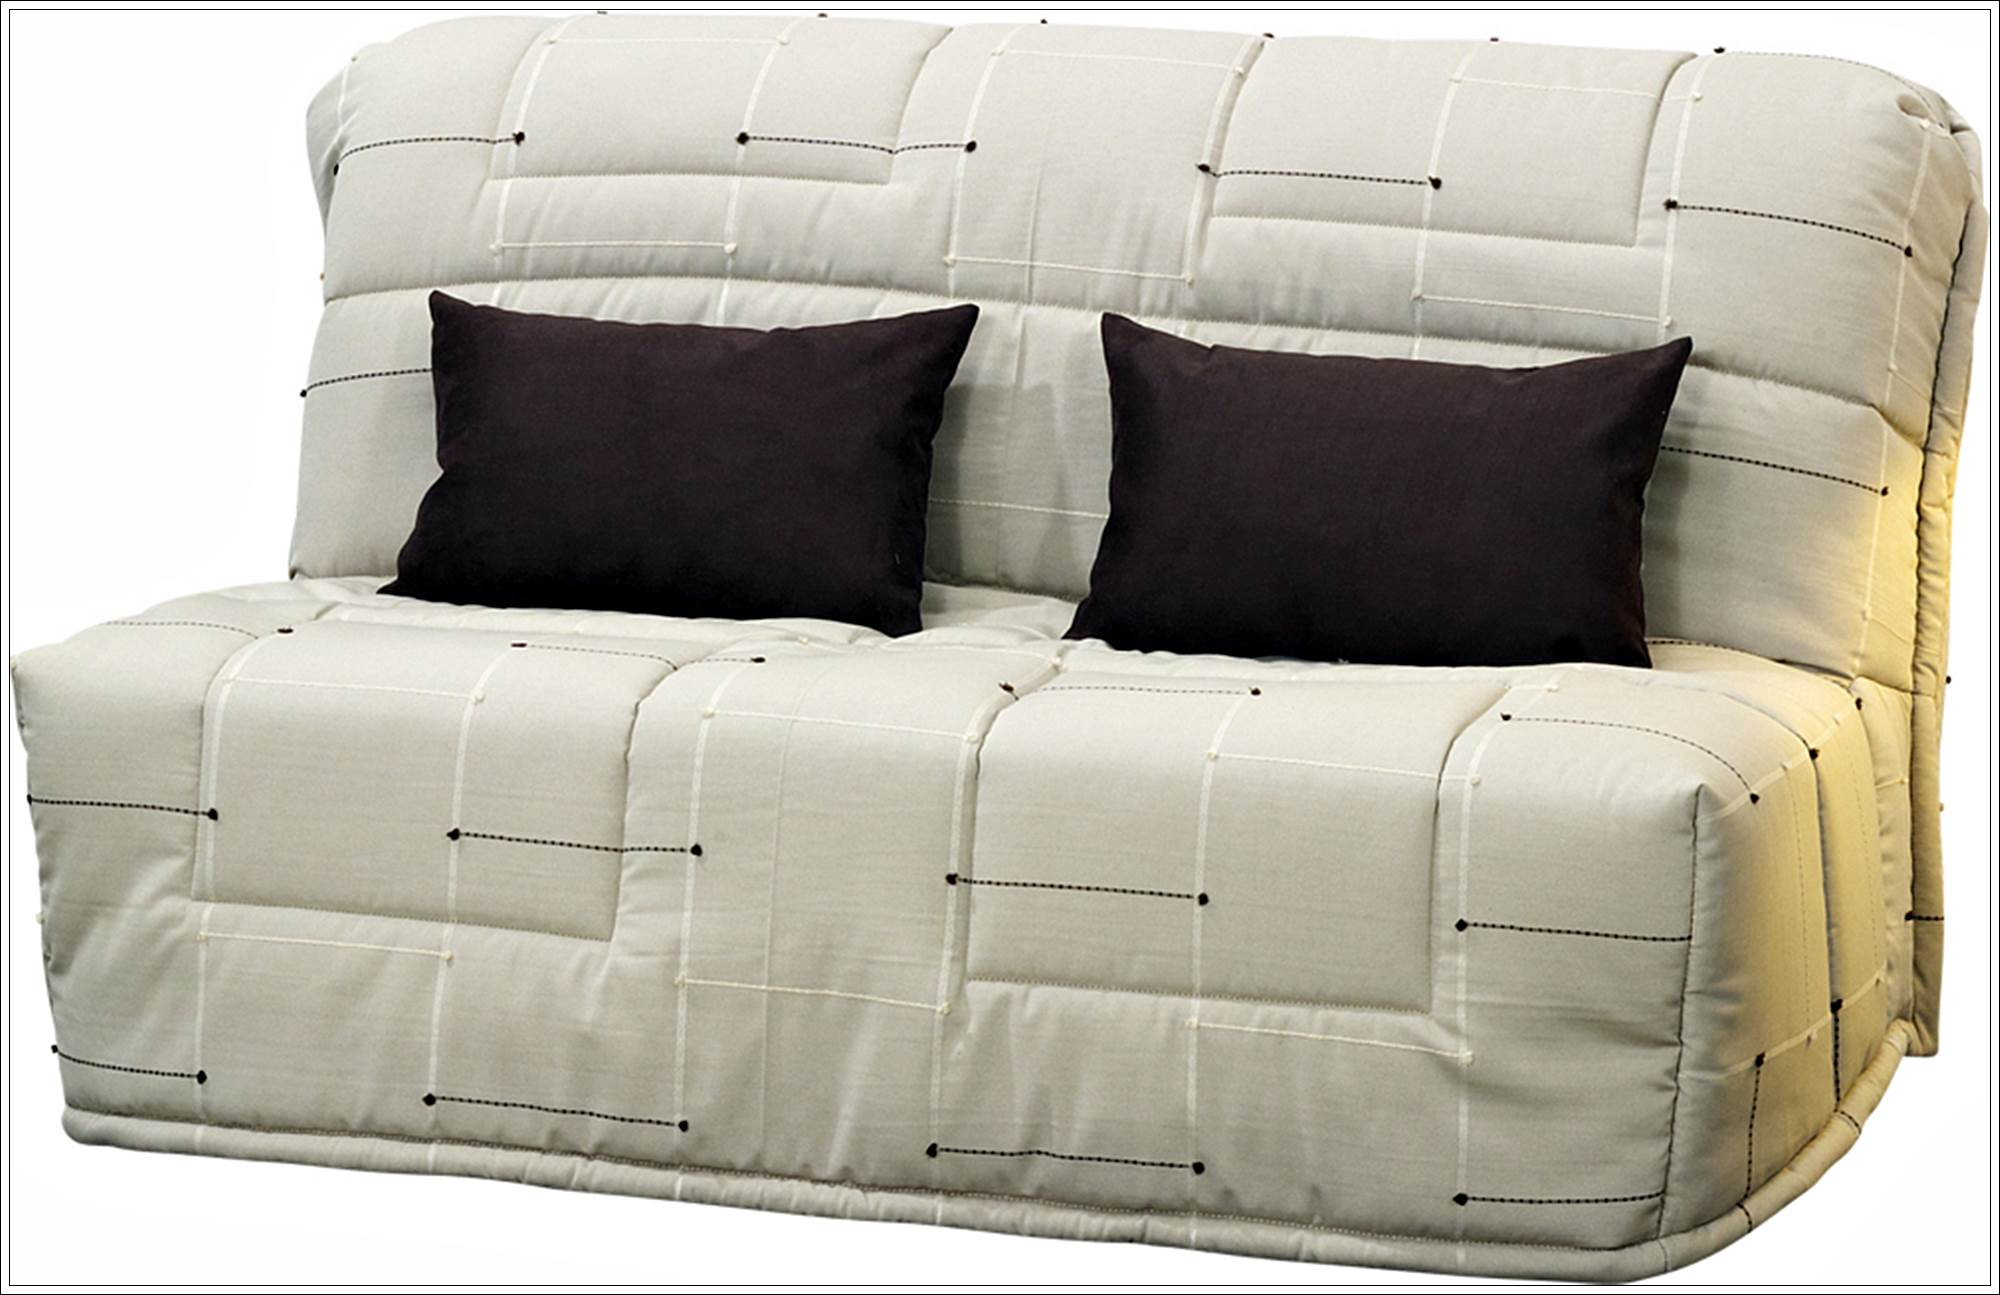 Housse canap bz ikea royal sofa id e de canap et for Housse clic clac fly